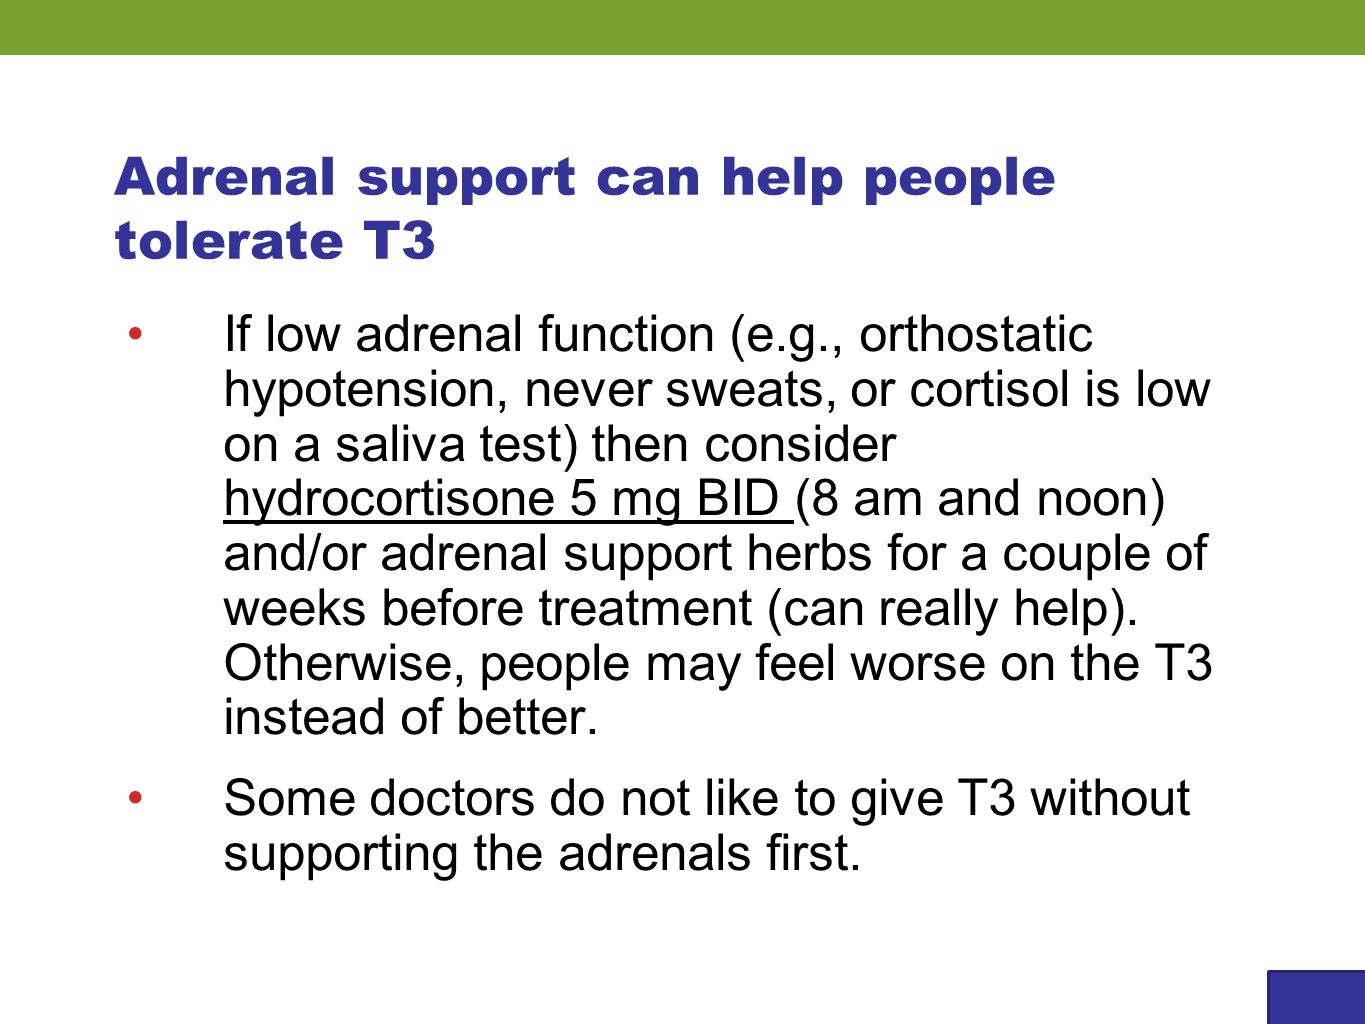 Adrenal support can help people tolerate T3 If low adrenal function (e.g., orthostatic hypotension, never sweats, or cortisol is low on a saliva test)